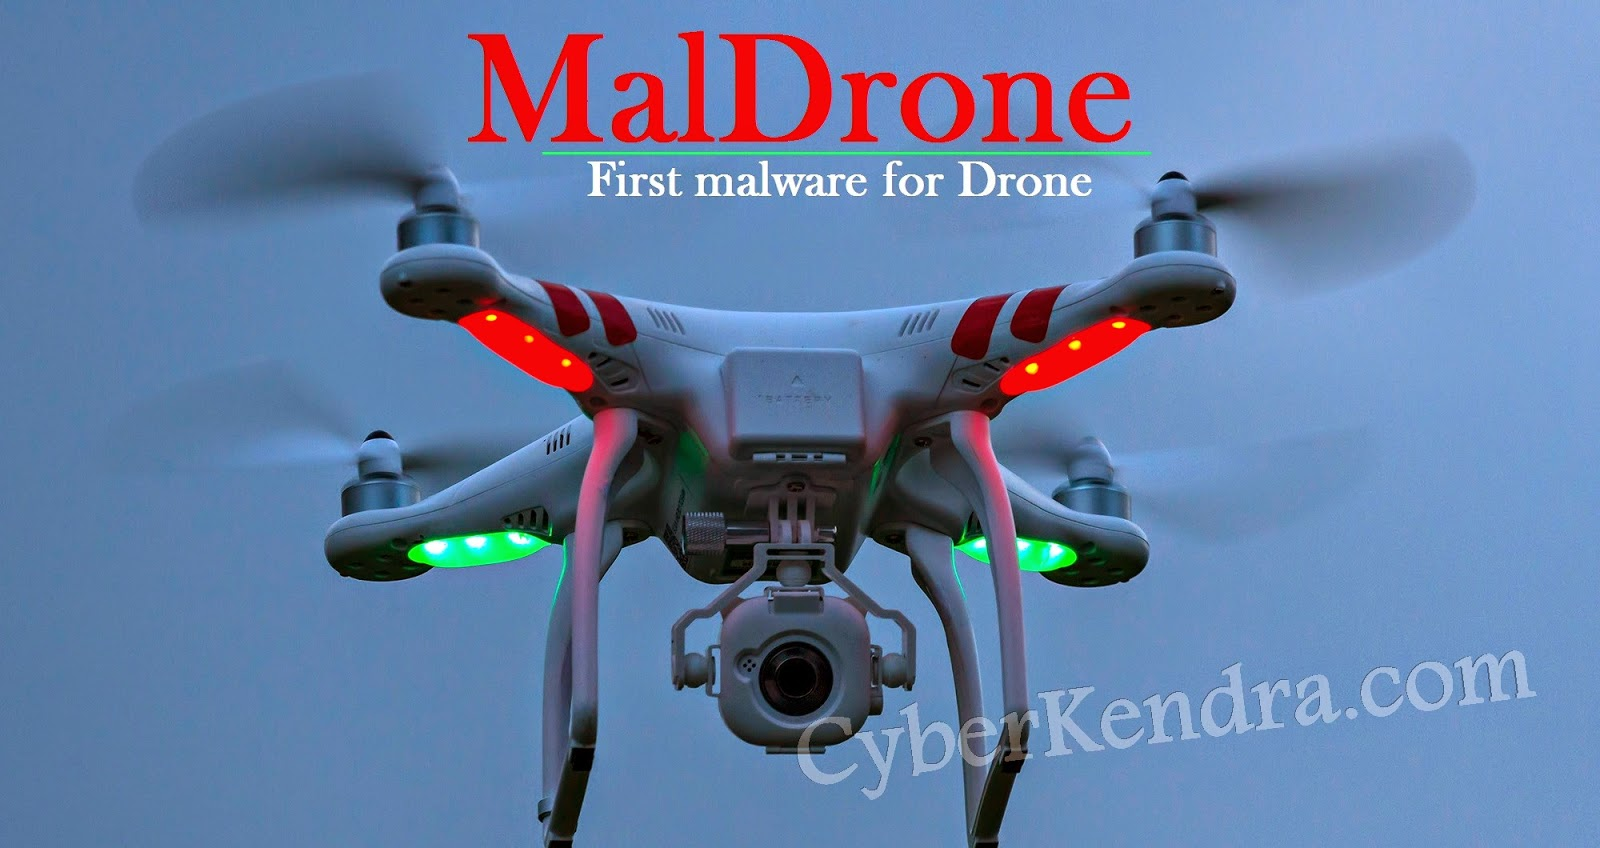 MalDrone: First Malware for Drone, Maldrone the First Backdoor for drones., hijack drones, how to hack Drones, hacking drones, backdoor on drones, Nullcon Goa event, Nullcon 2015, register for Nullcon, Parrot AR Drones